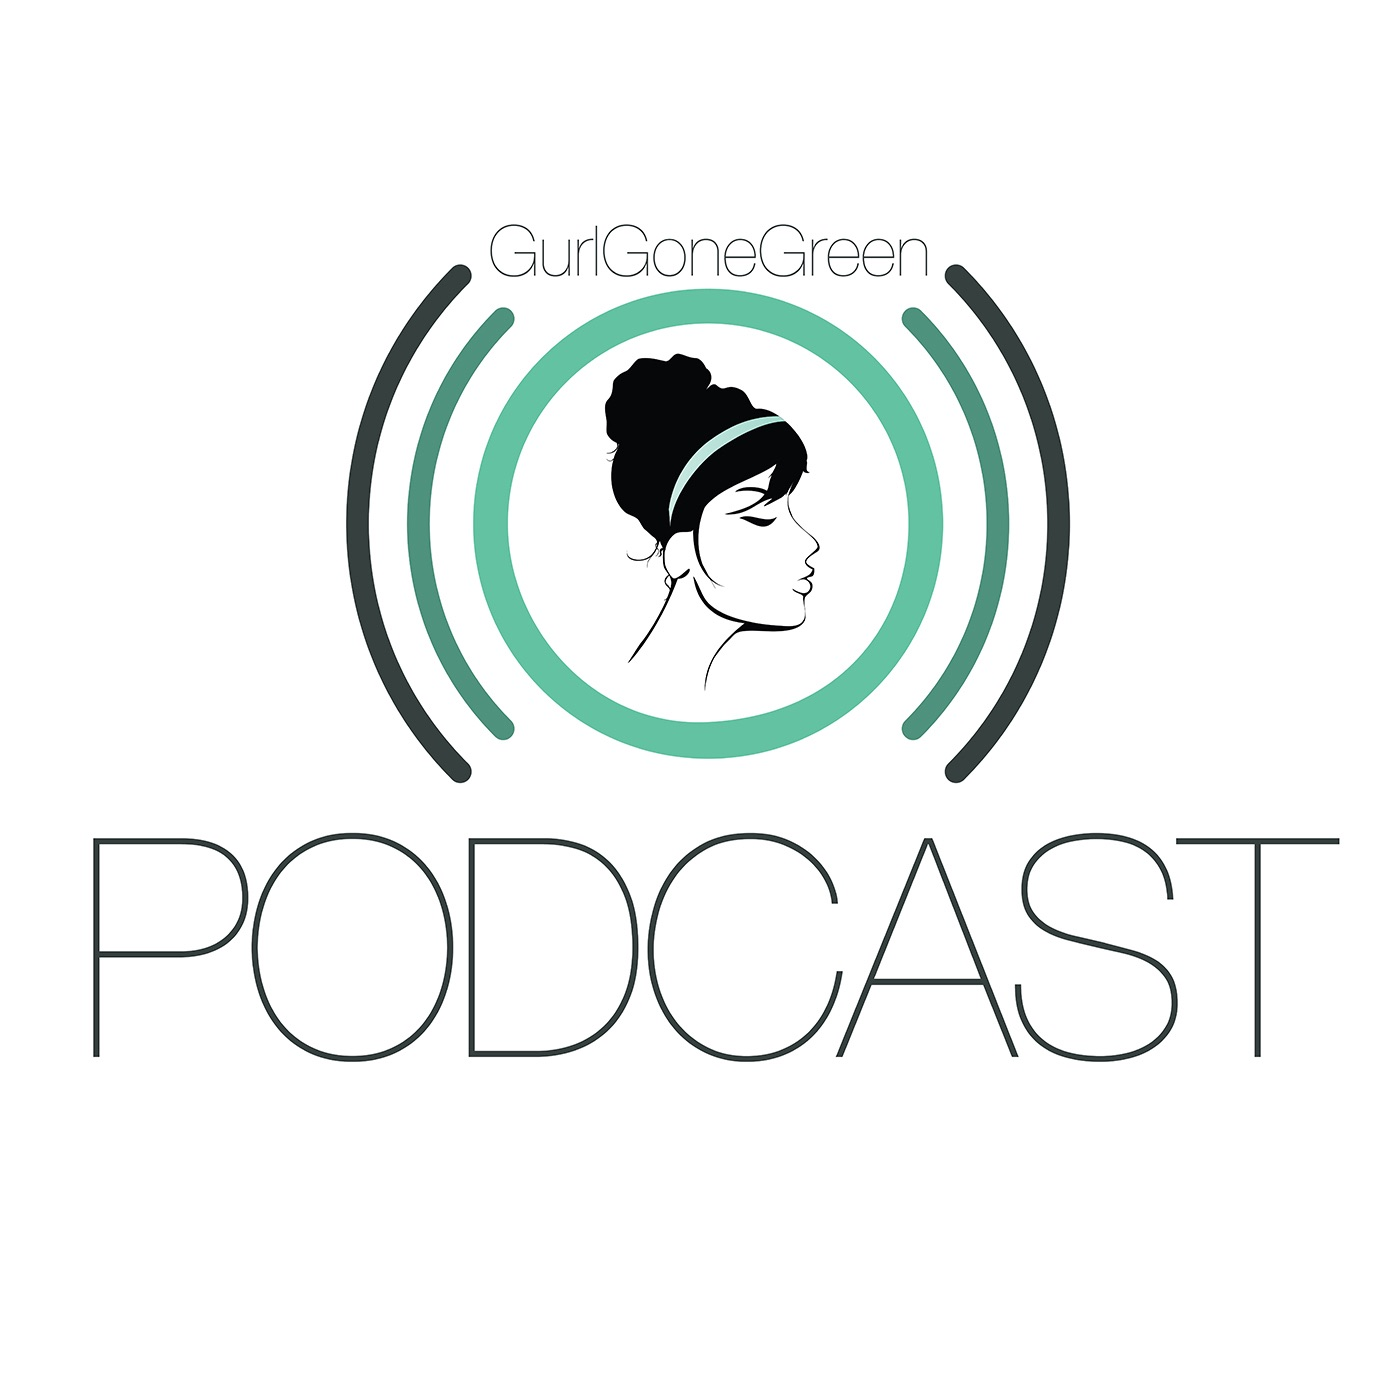 GurlGoneGreen Podcast